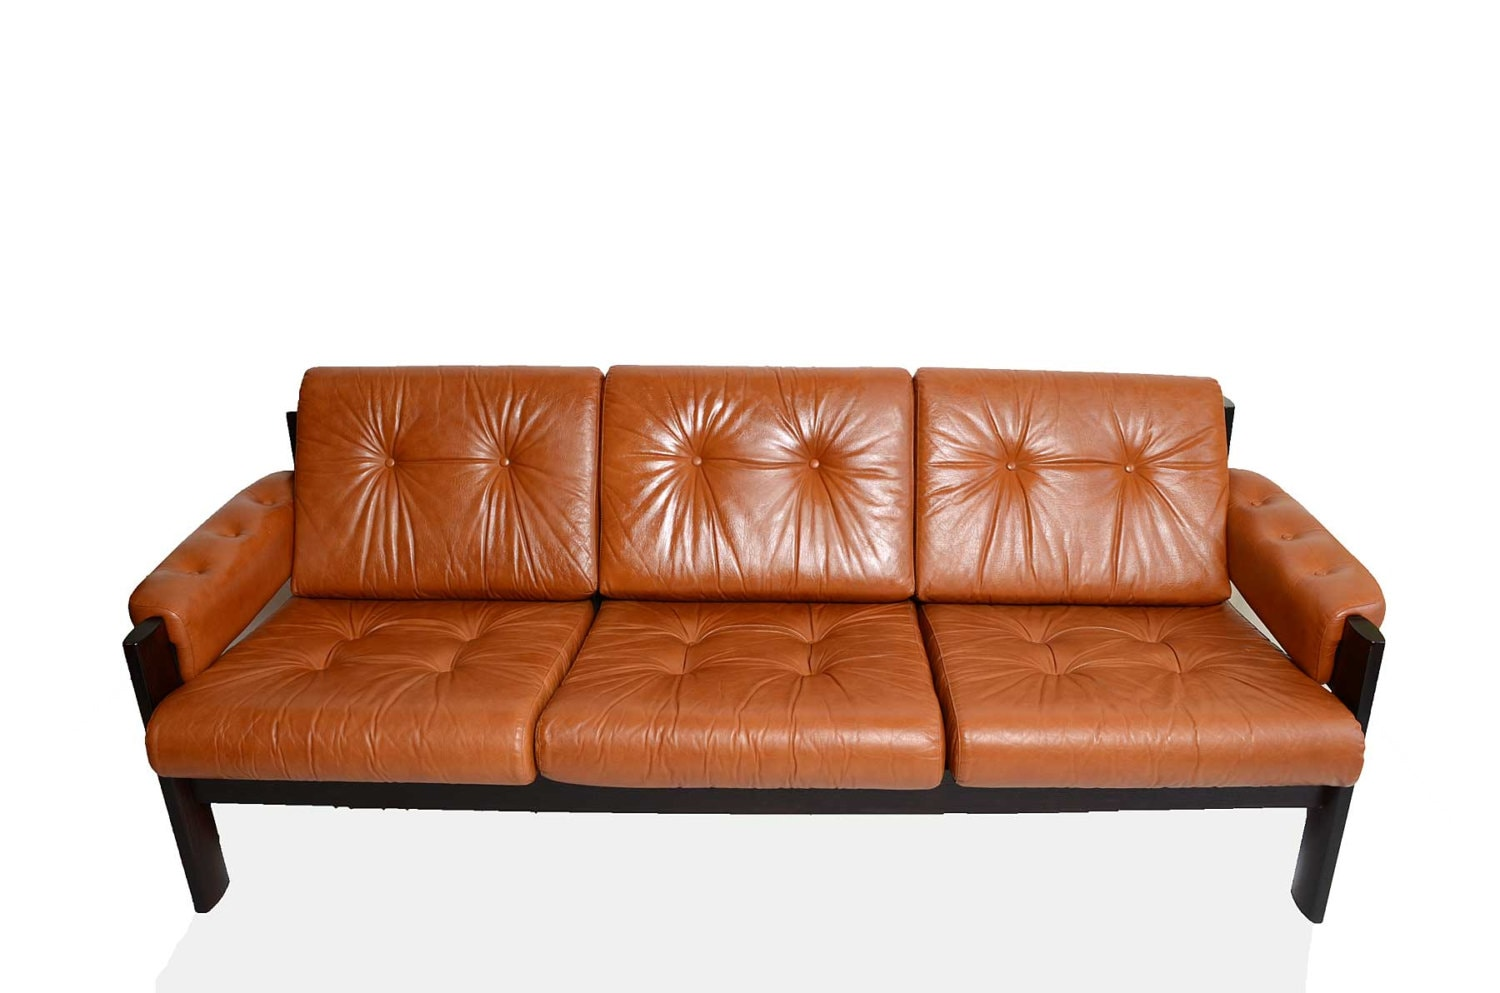 Leather Ekornes Stressless Amigo Sofa Norway Mid Century